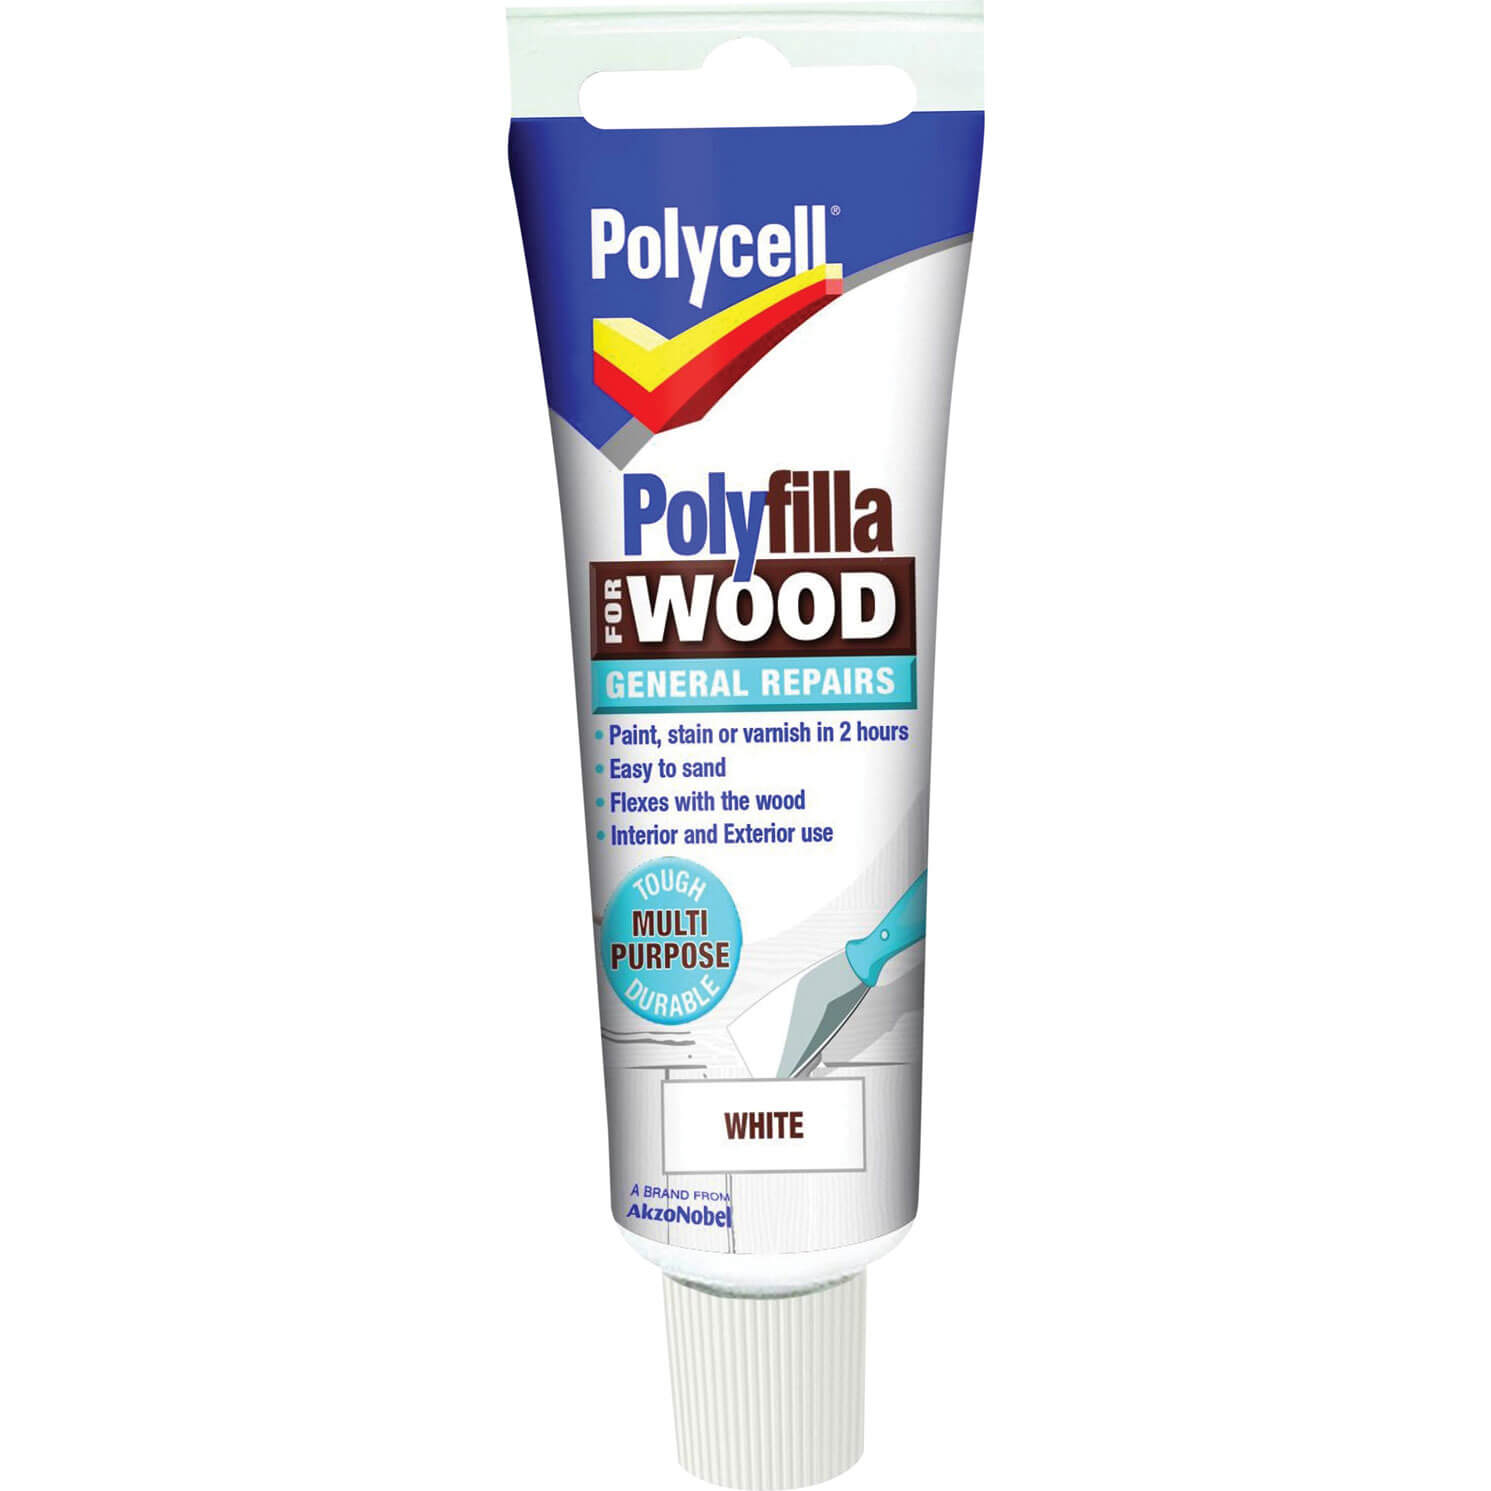 Polycell Polyfilla for Wood General Repairs White 75g